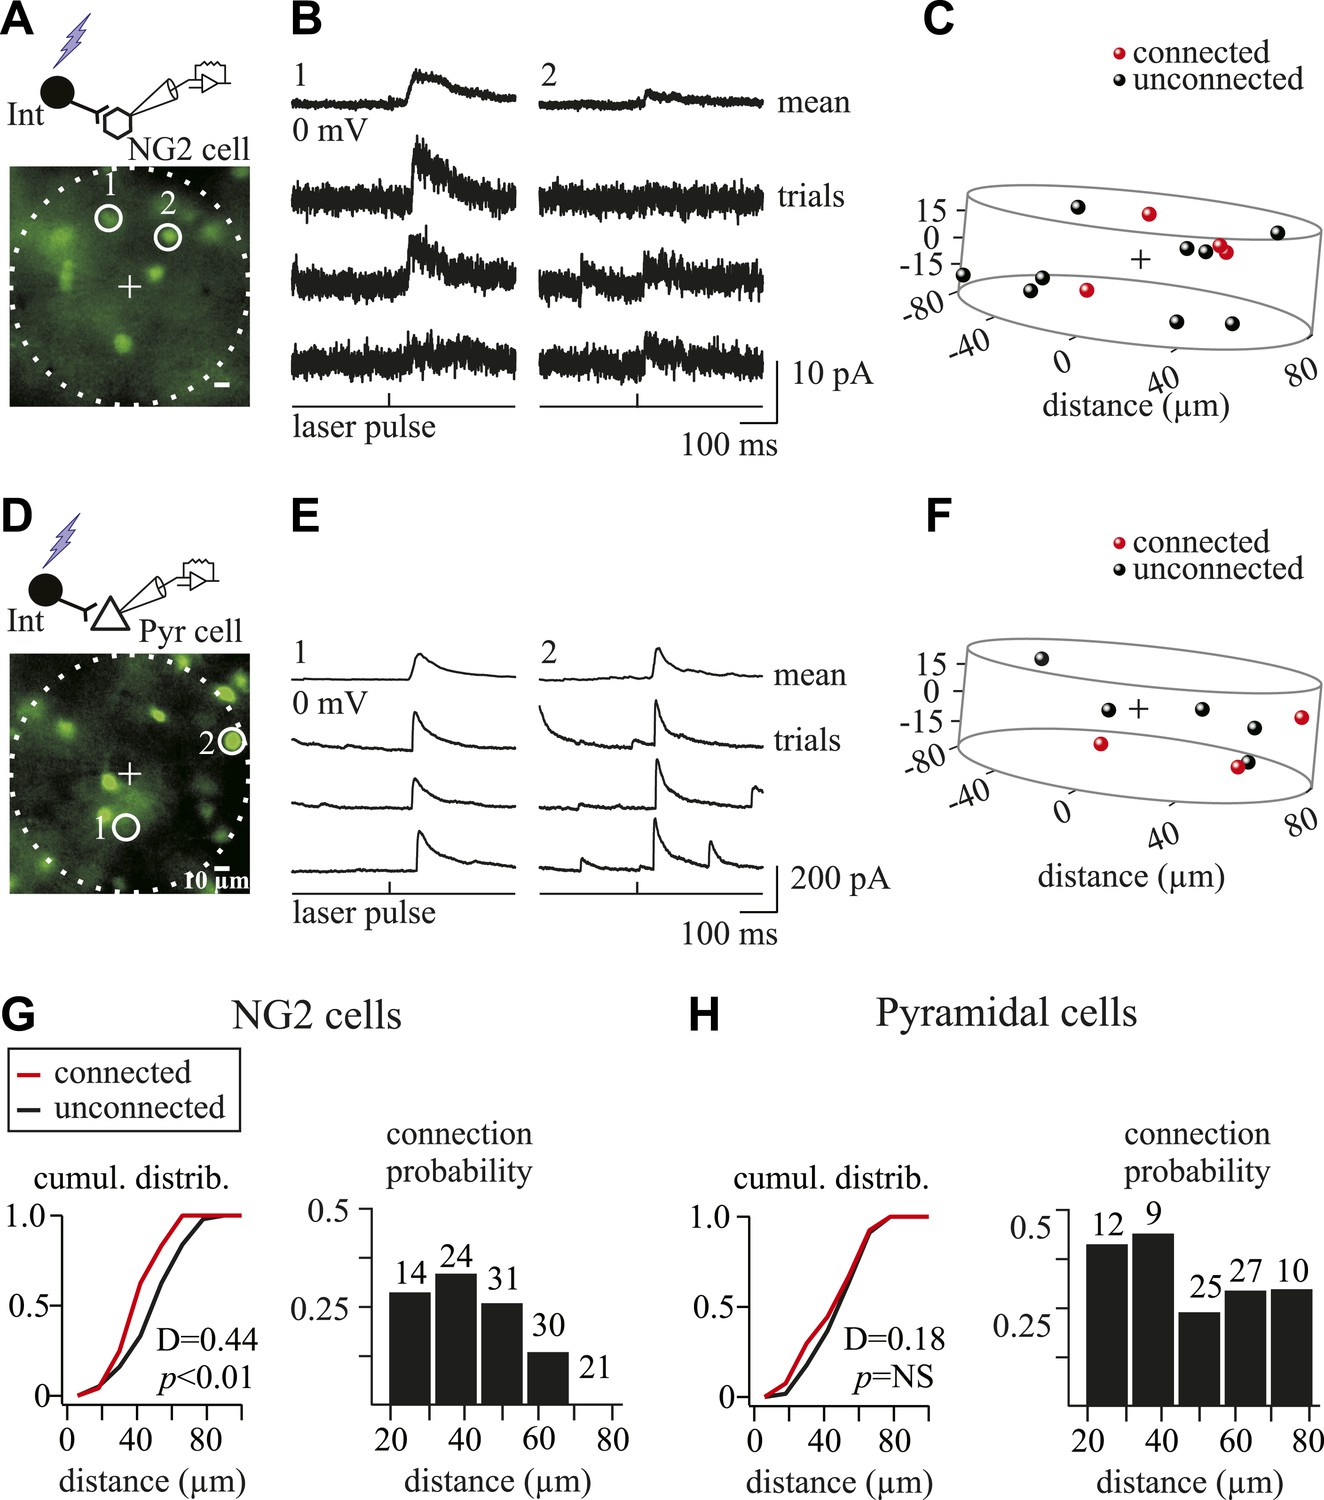 Interneurons And Oligodendrocyte Progenitors Form A Structured Technologyuk Physics Electrical Principles Measuring Current Gabaergic Connectivity Maps Of Ng2 Cells Pyramidal Neurons